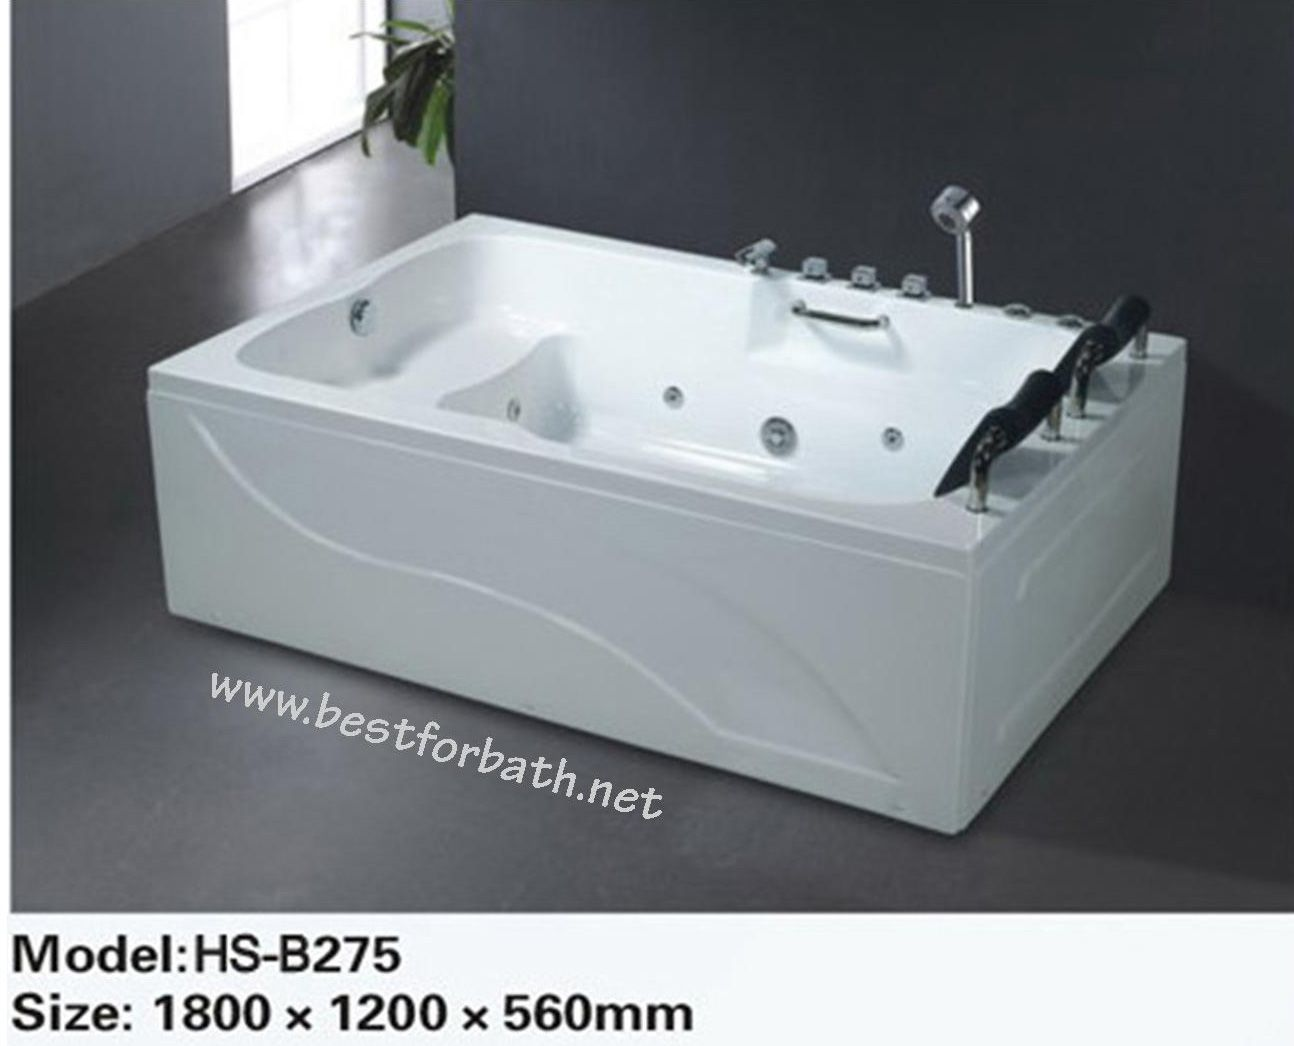 2 PERSON Deluxe Computerized Whirlpool, Jetted Bathtubs. B275.LEFT ...